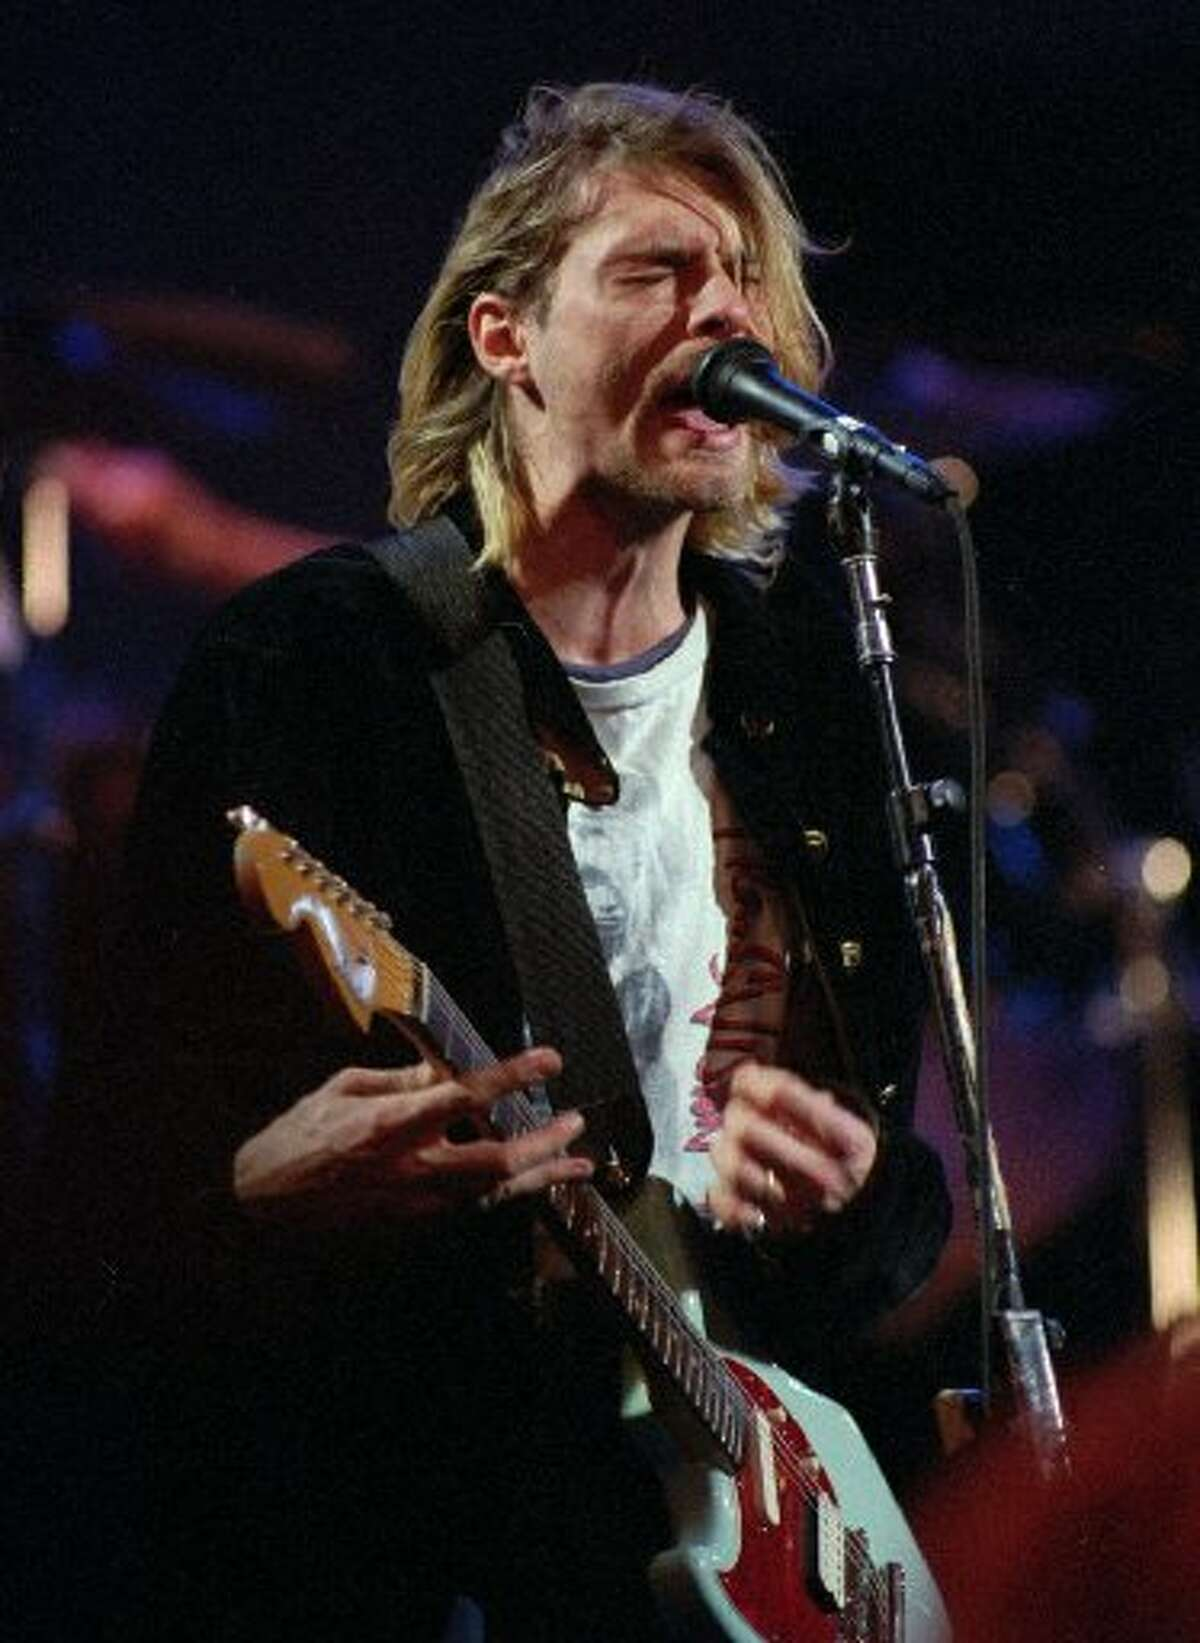 Can you believe that grunge is 20? Grunge, not to be confused with alternative rock, had about 10 good years, from the early '80s to the early '90s. - Julie Ruff In this file photo we see front man for Nirvana Kurt Cobain during a performance, who was left-handed. Cobain, however, wrote with his right hand and played guitar with his left. He committed suicide in 1994.